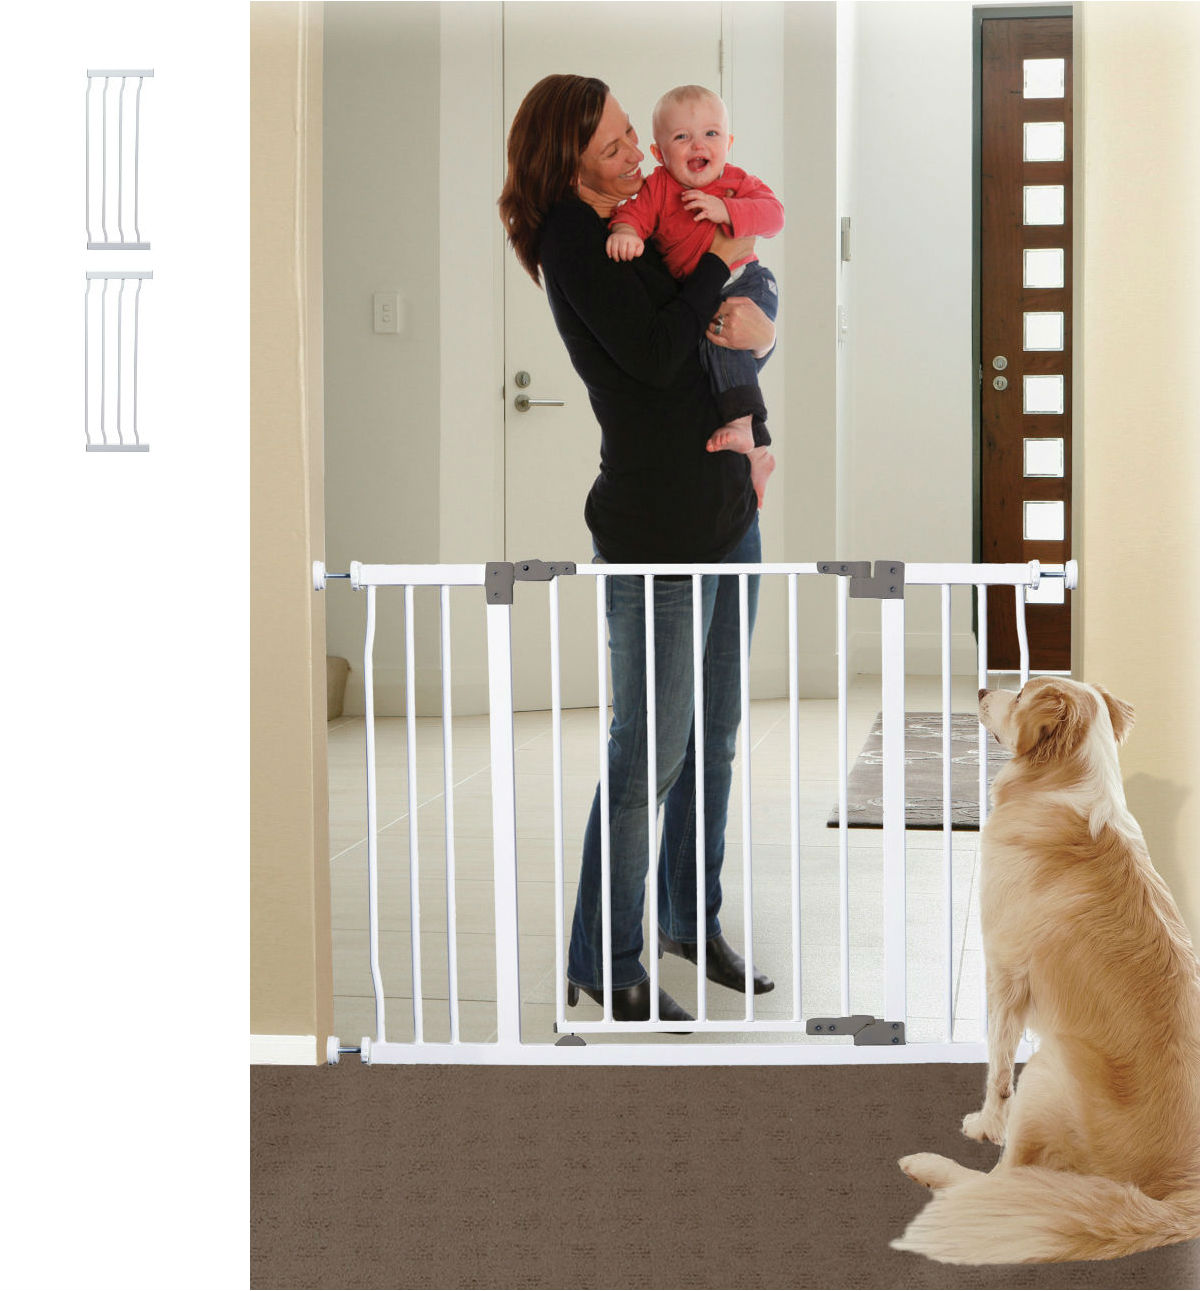 Liberty Xtra Hallway Security Baby Gate Plus Two 10.5 \u2013 White (60 to 63W) & Baby and Pet Gates | Wide Tall Gate for Child Dog Stairs Safety